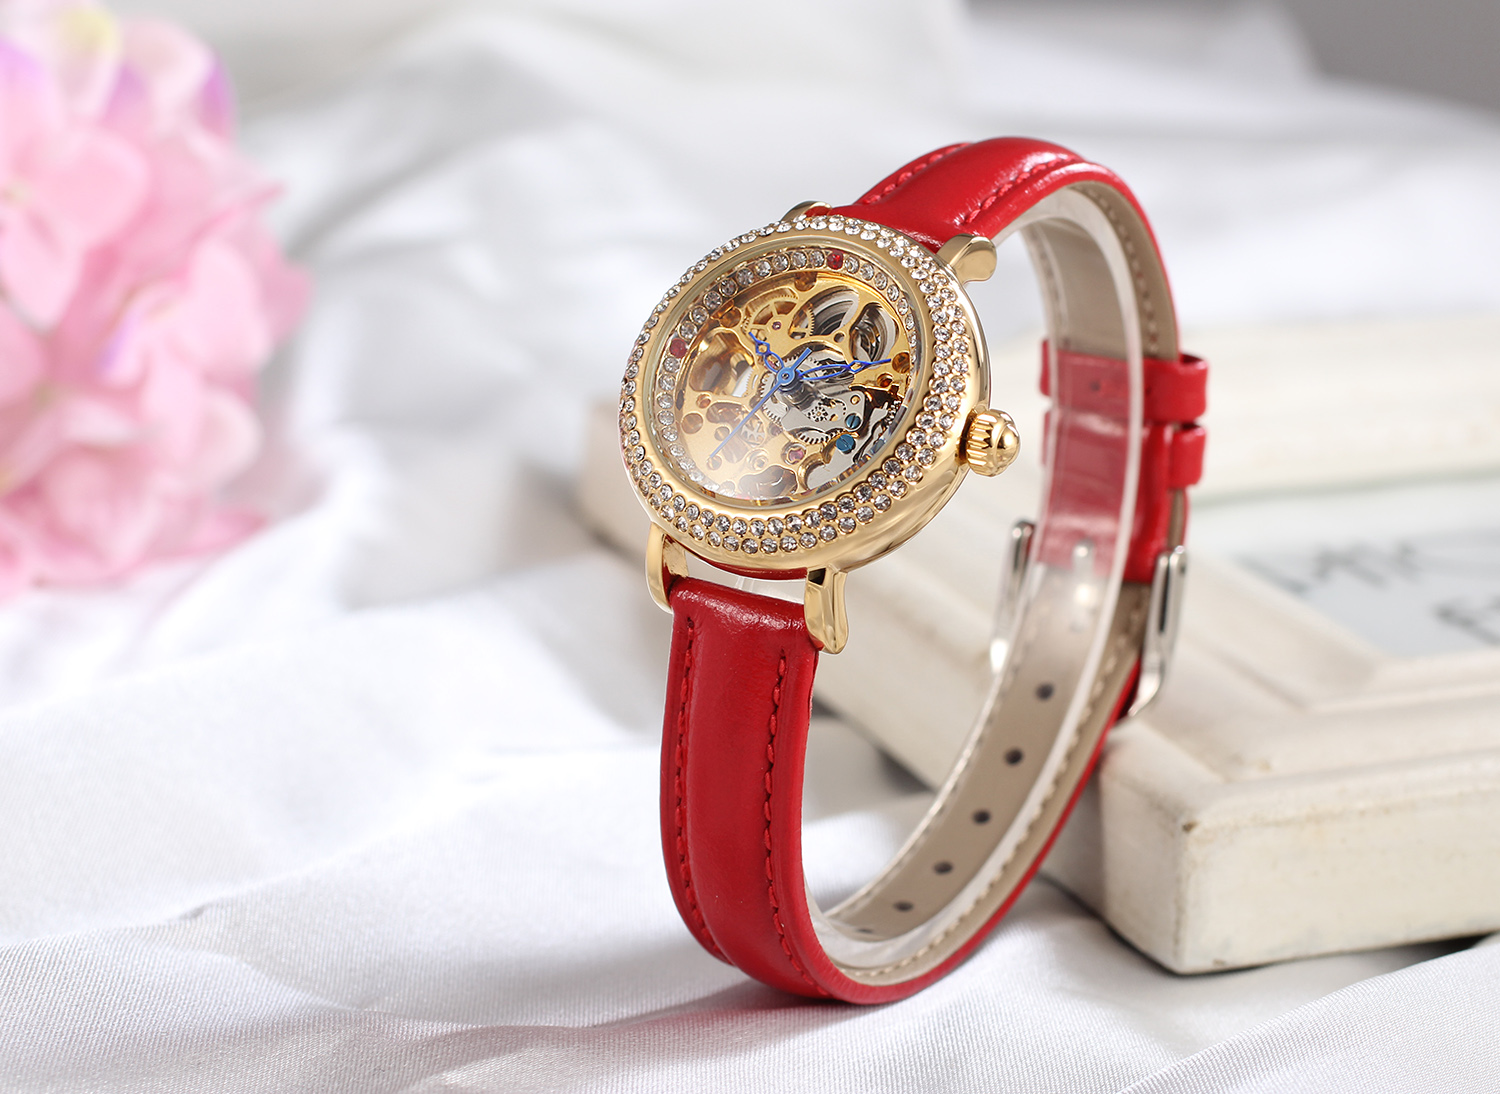 2018 FORSINING Luxury Design Girl Latest Hand Fashion Lady Watch With Automatic Movement Genuine Leather